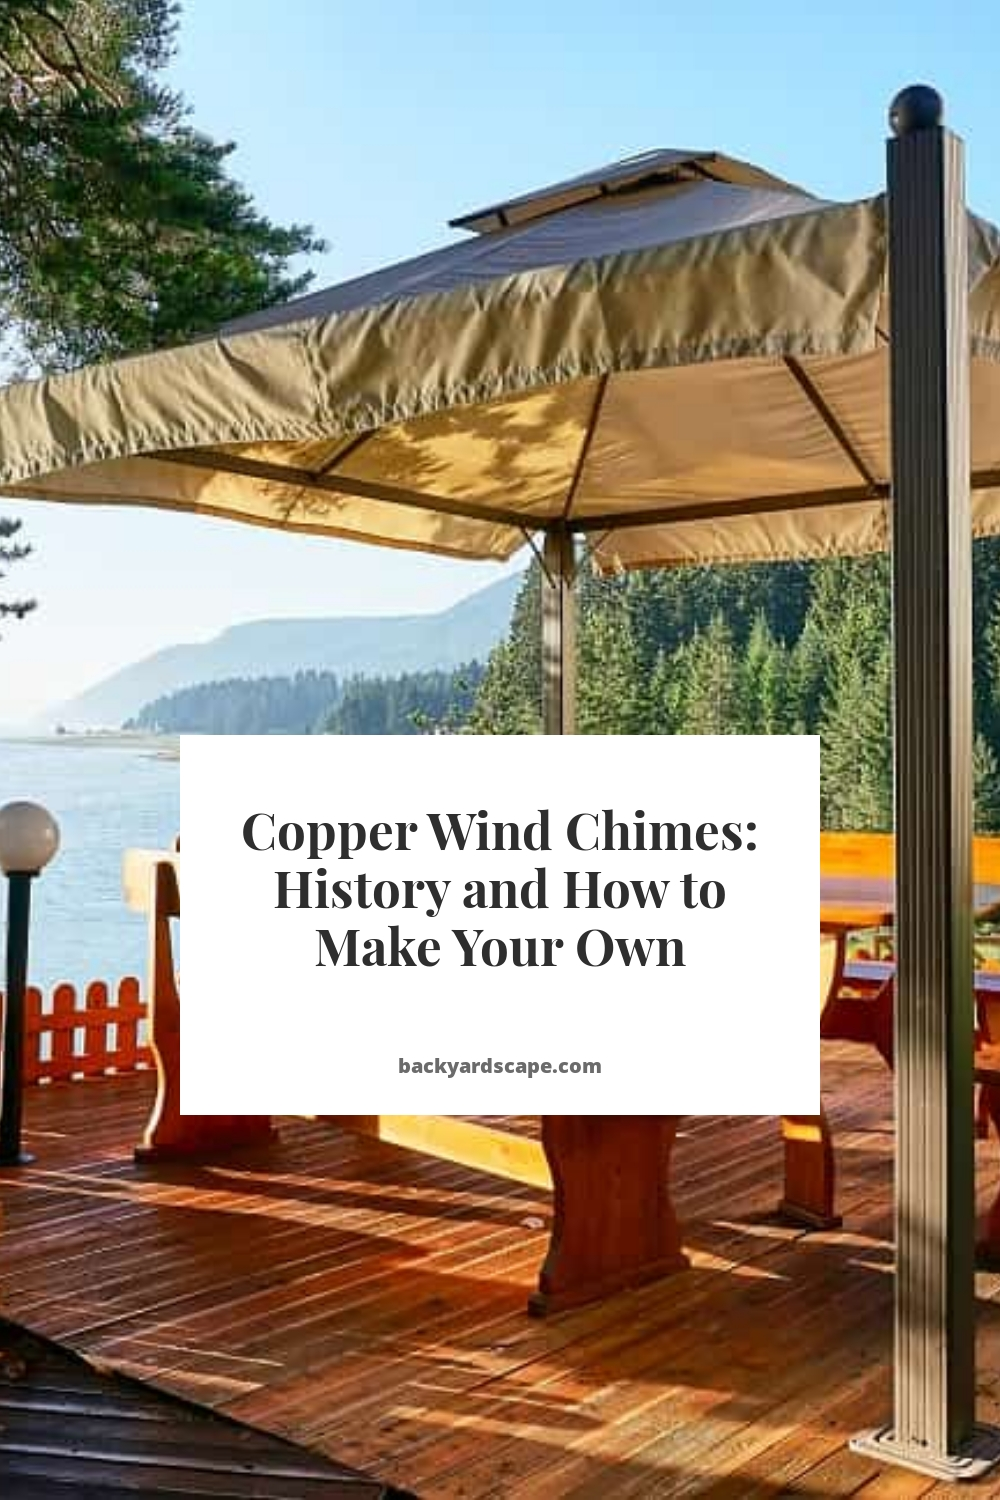 Copper Wind Chimes: History and How to Make Your Own